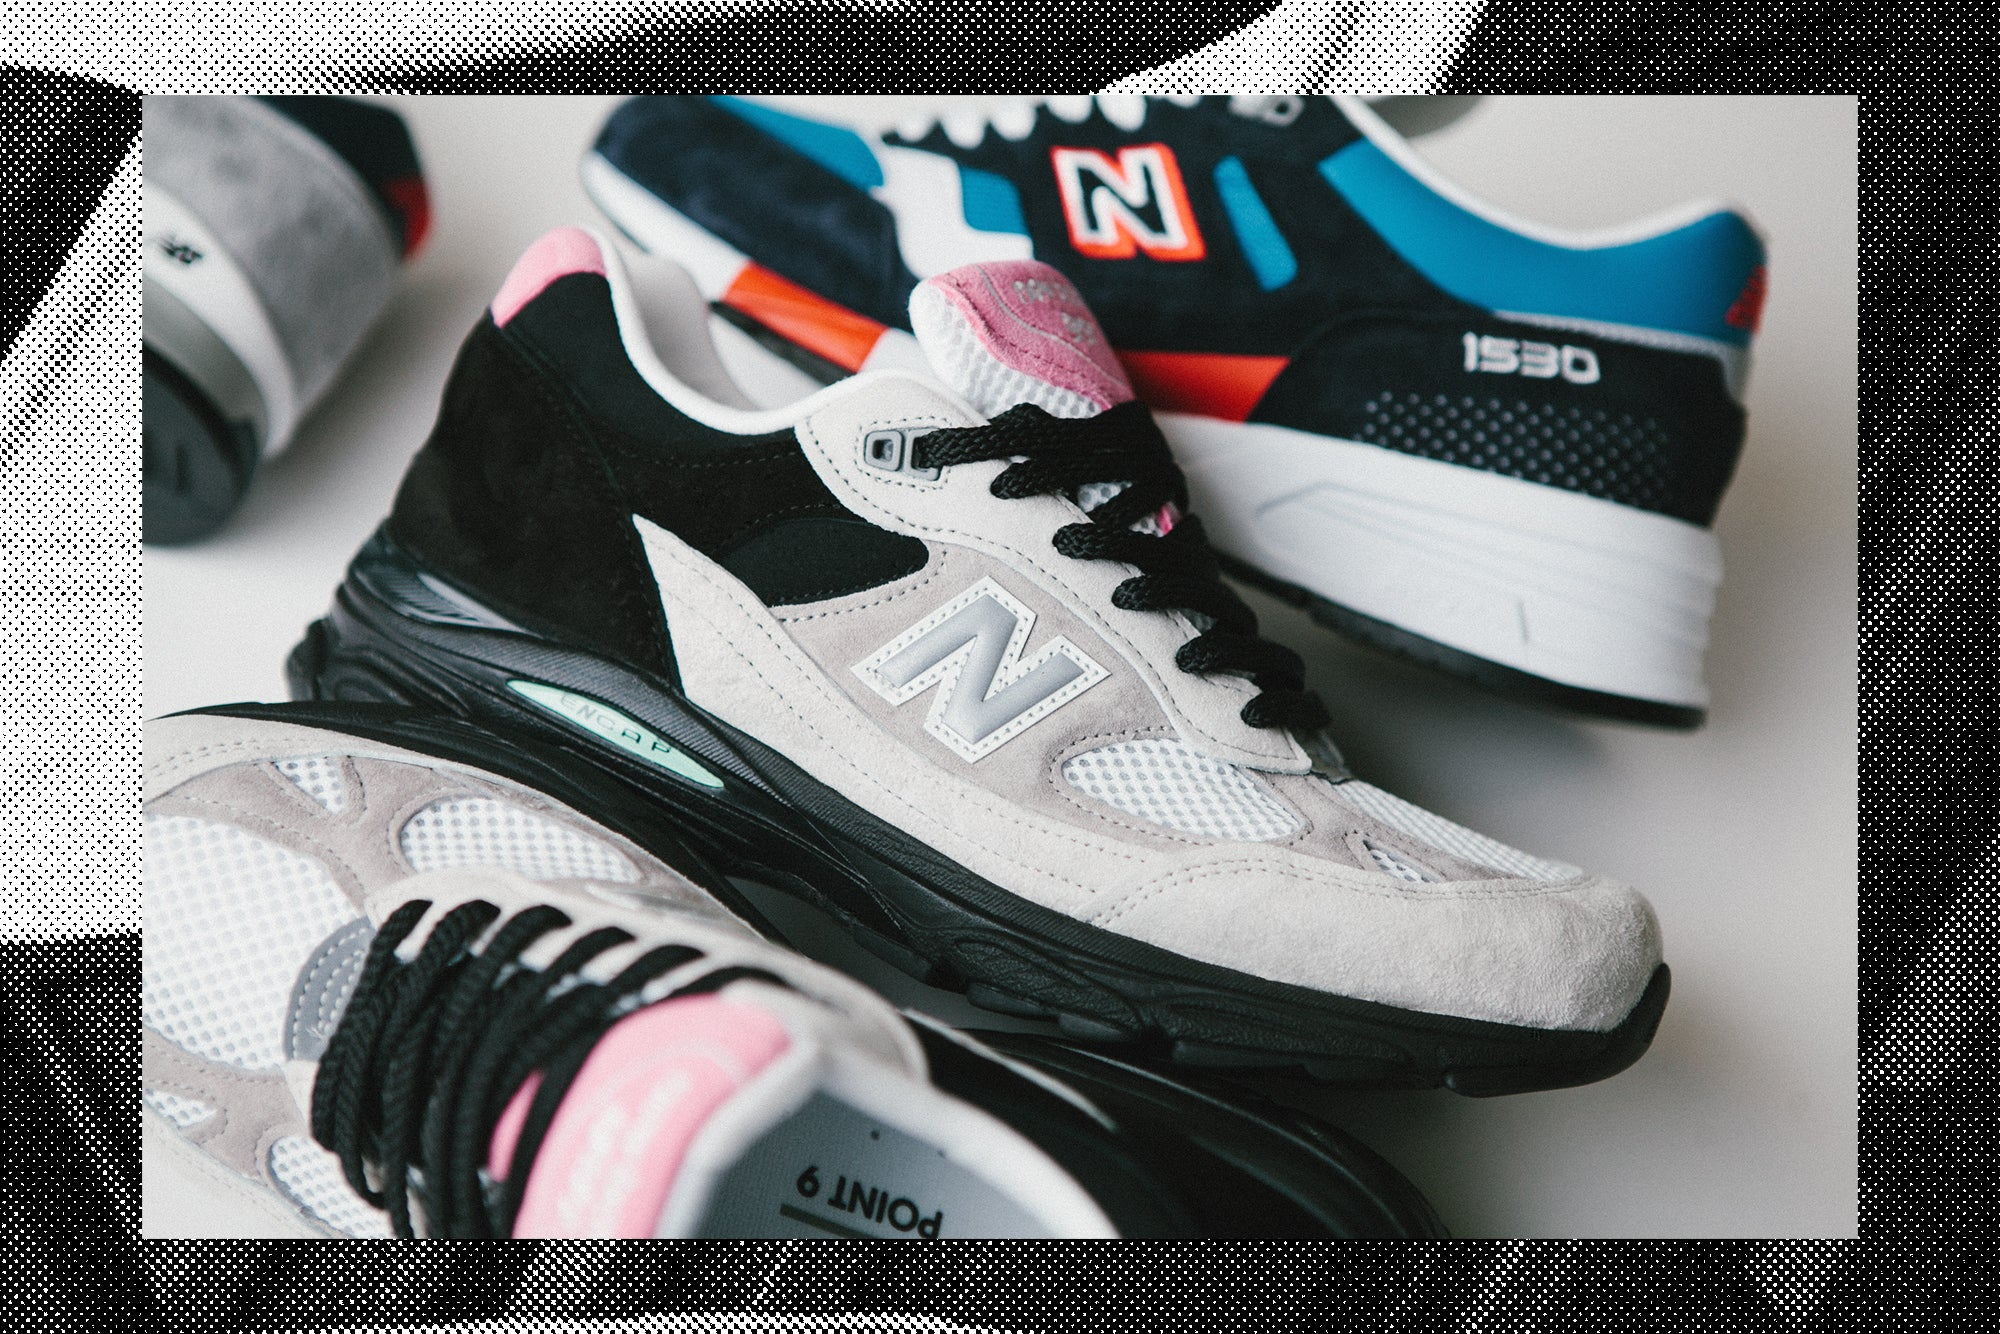 Introducing: New Balance 'Made in UK' Series | Always in Colour